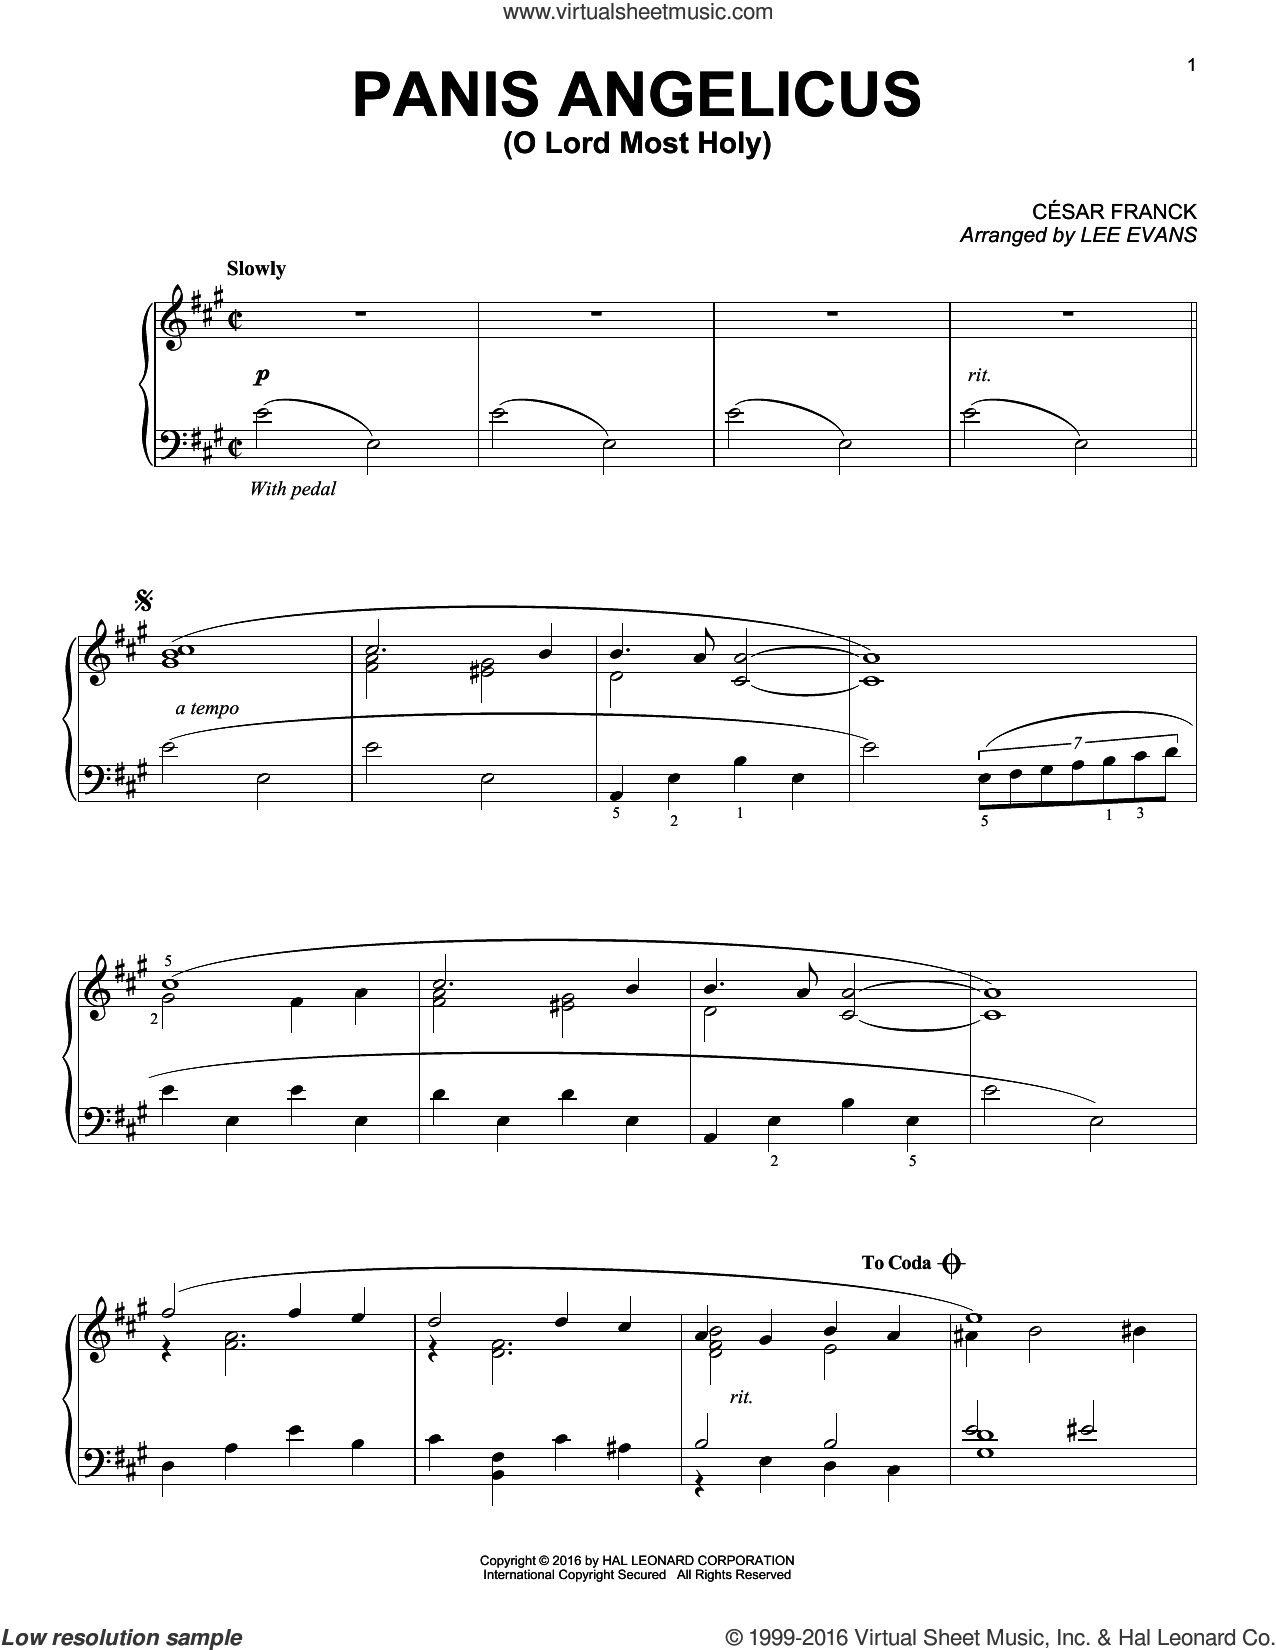 Panis Angelicus (O Lord Most Holy) sheet music for piano solo by Lee Evans